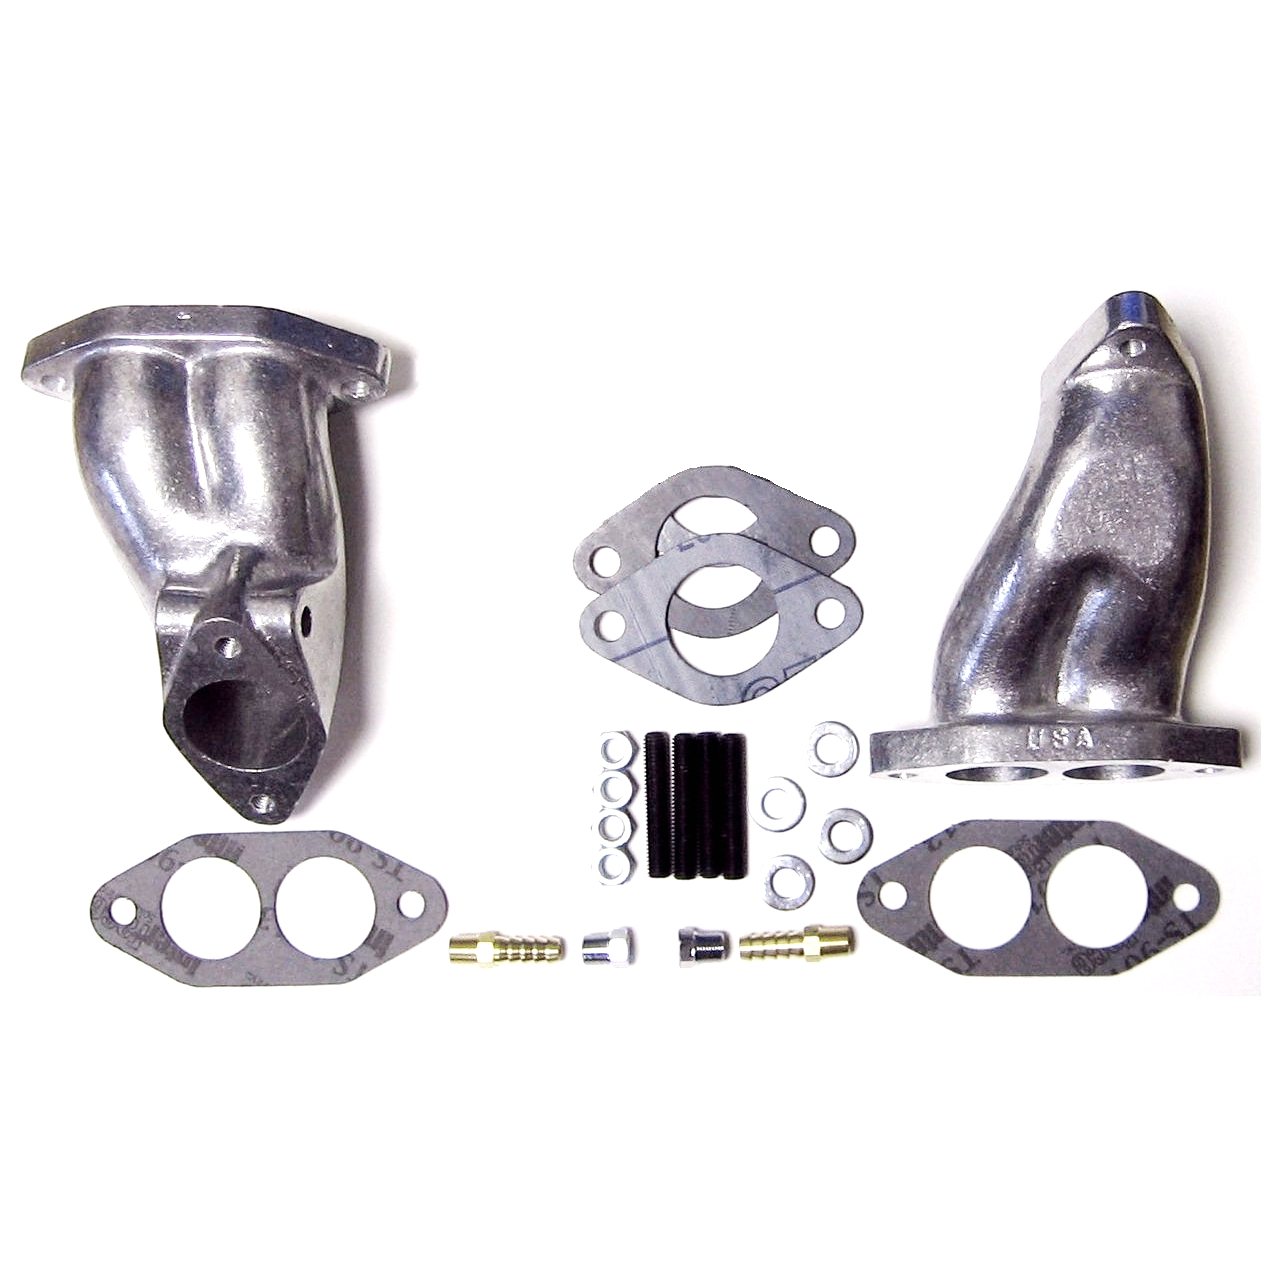 AIR-COOLED VW T1 DUAL-PORT IKT CARB MANIFOLD KIT CB PERFORMANCE